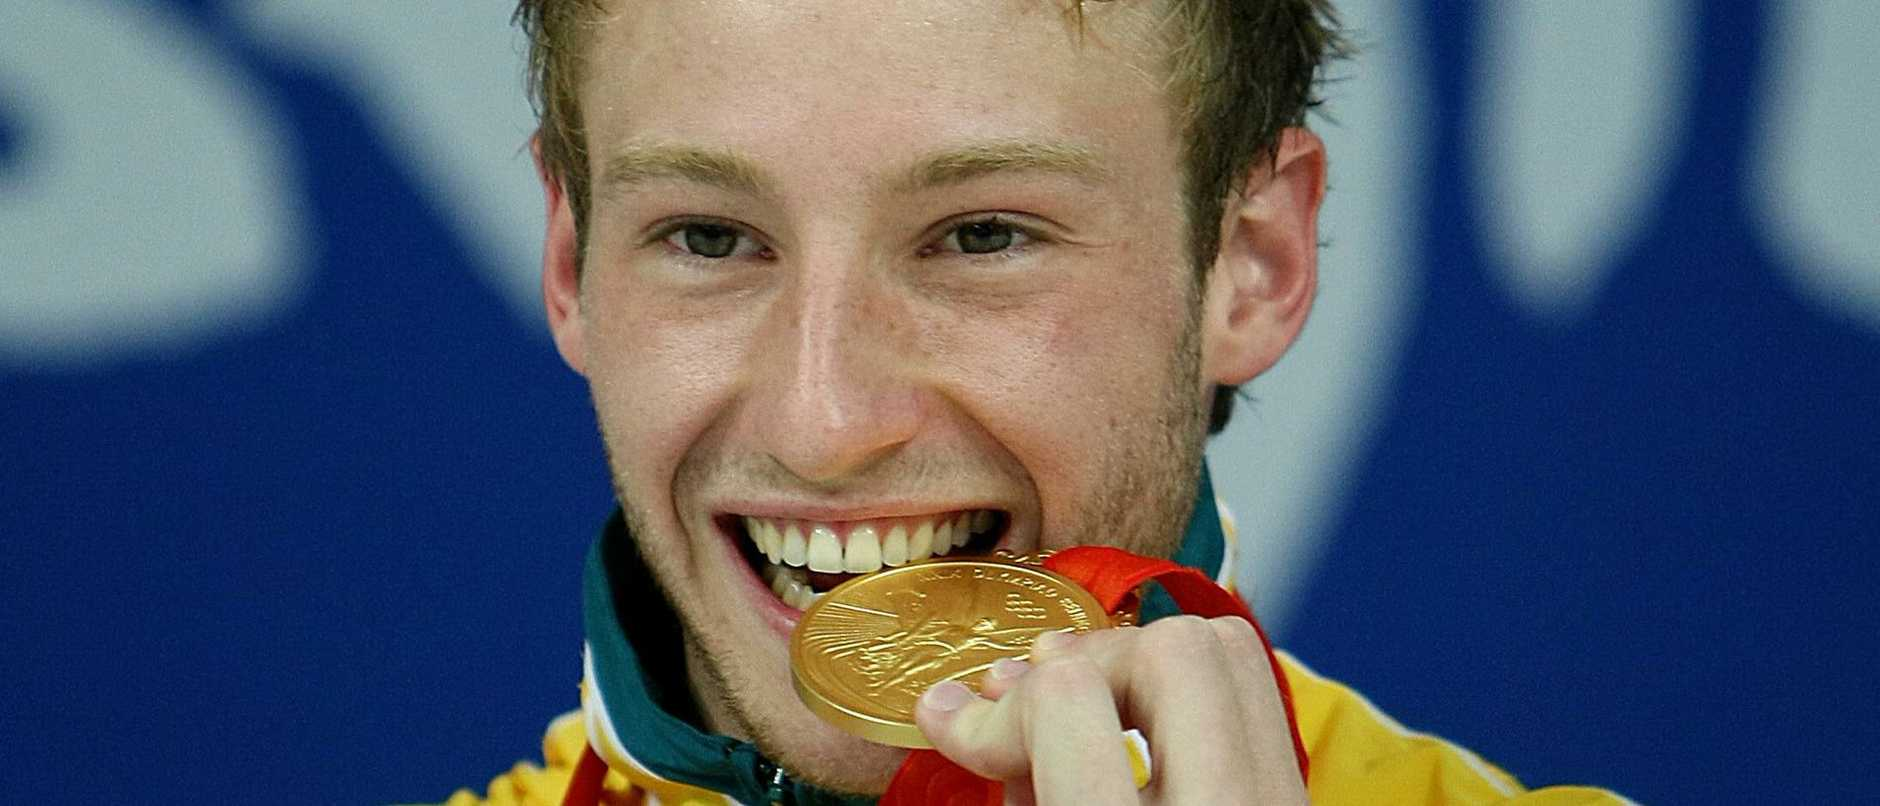 """Former Australian diver Matthew Mitcham has detailed the """"crippling"""" addiction to crystal meth that plagued his professional career."""